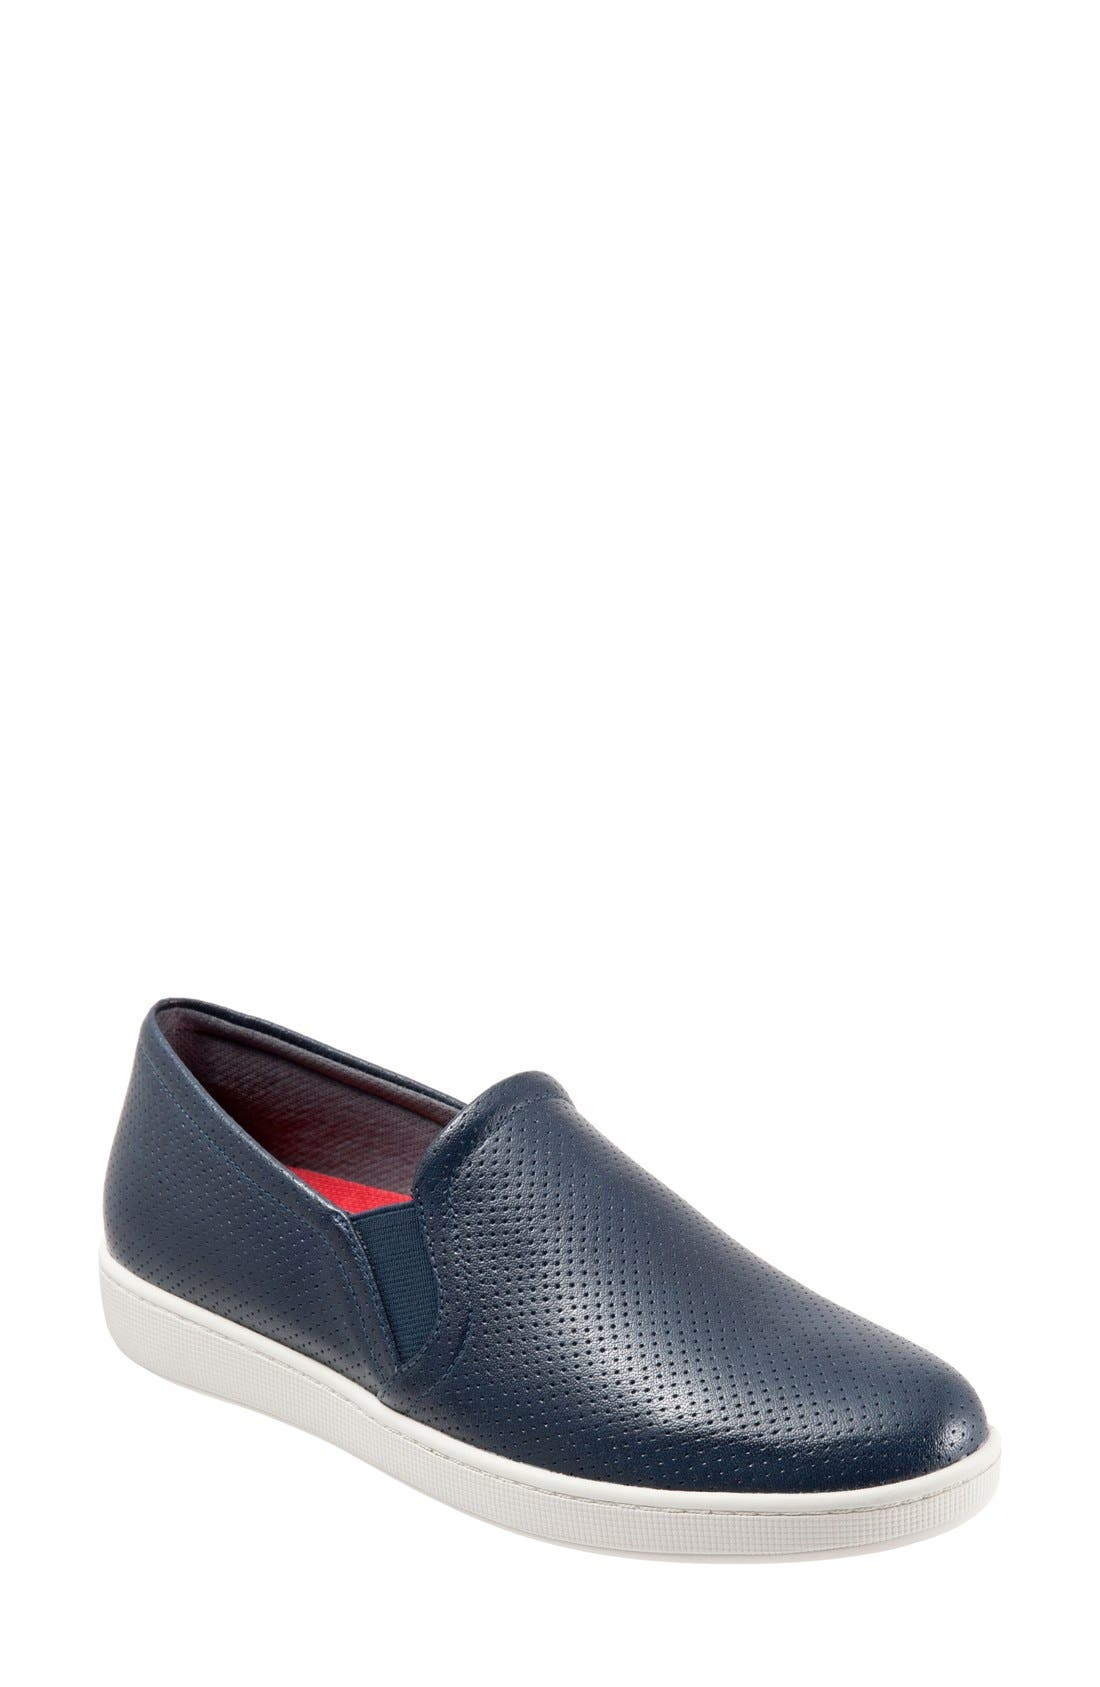 'Americana' Slip-On Sneaker,                             Main thumbnail 1, color,                             NAVY PERFORATED